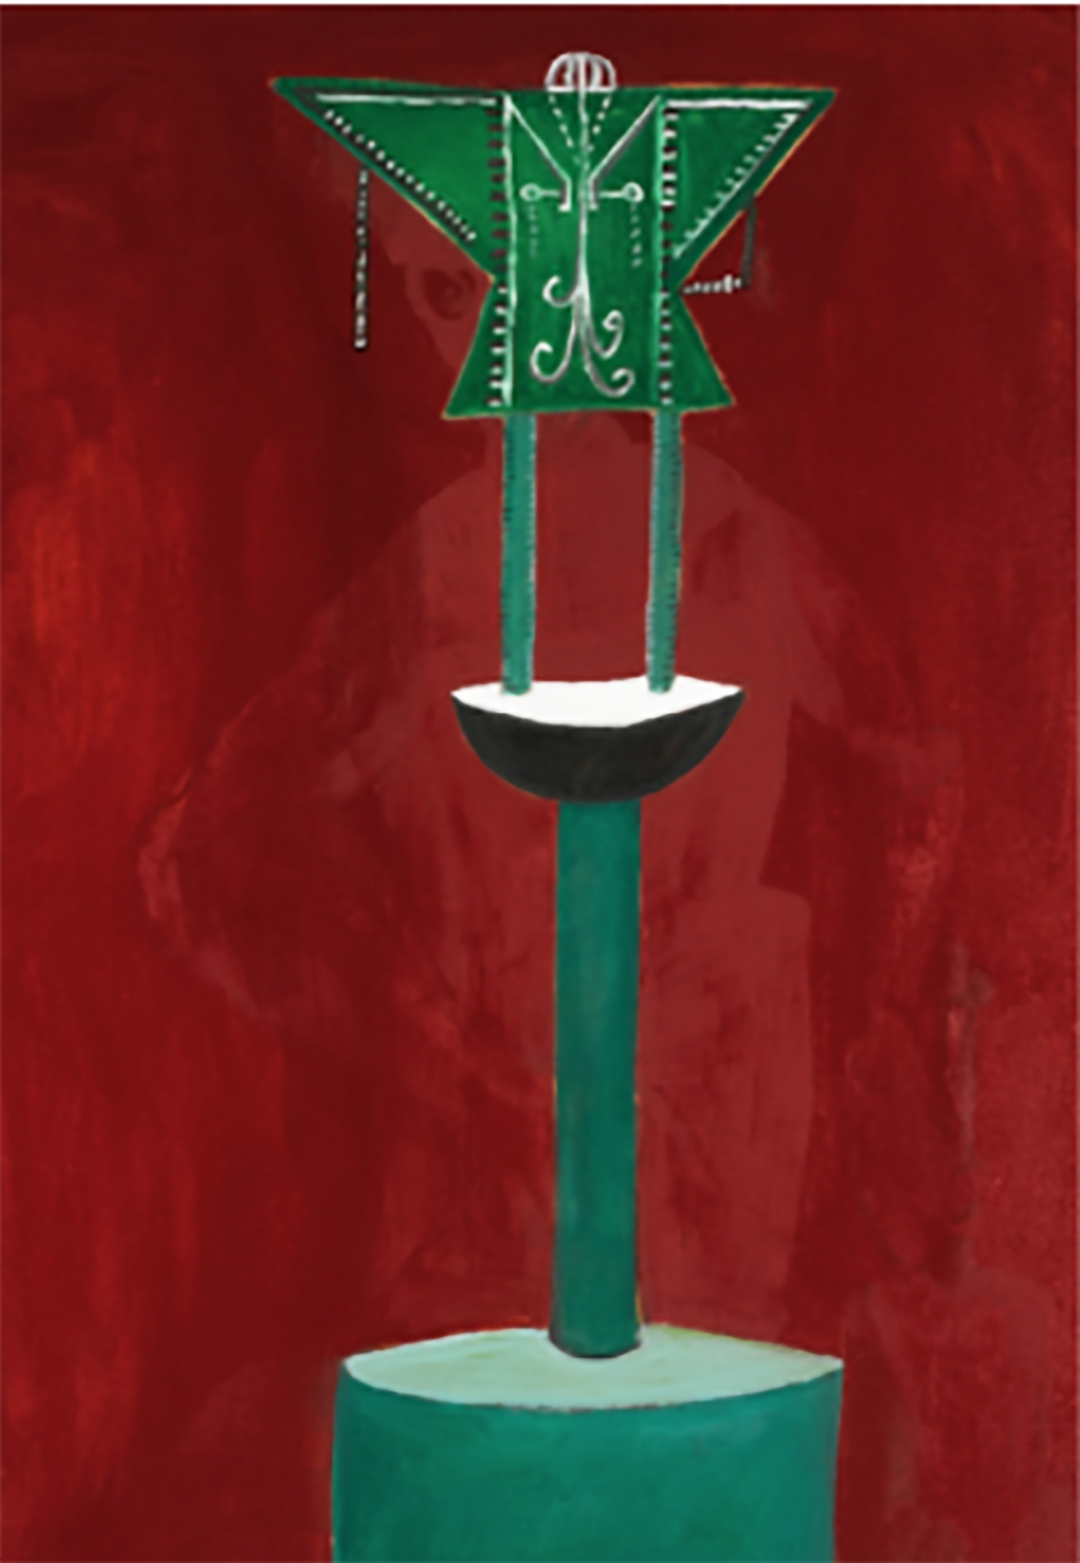 George Condo, <i>Untitled</i>, 1983, Oil on canvas, 68 x 48 in (172.72 x 121.92 cm)